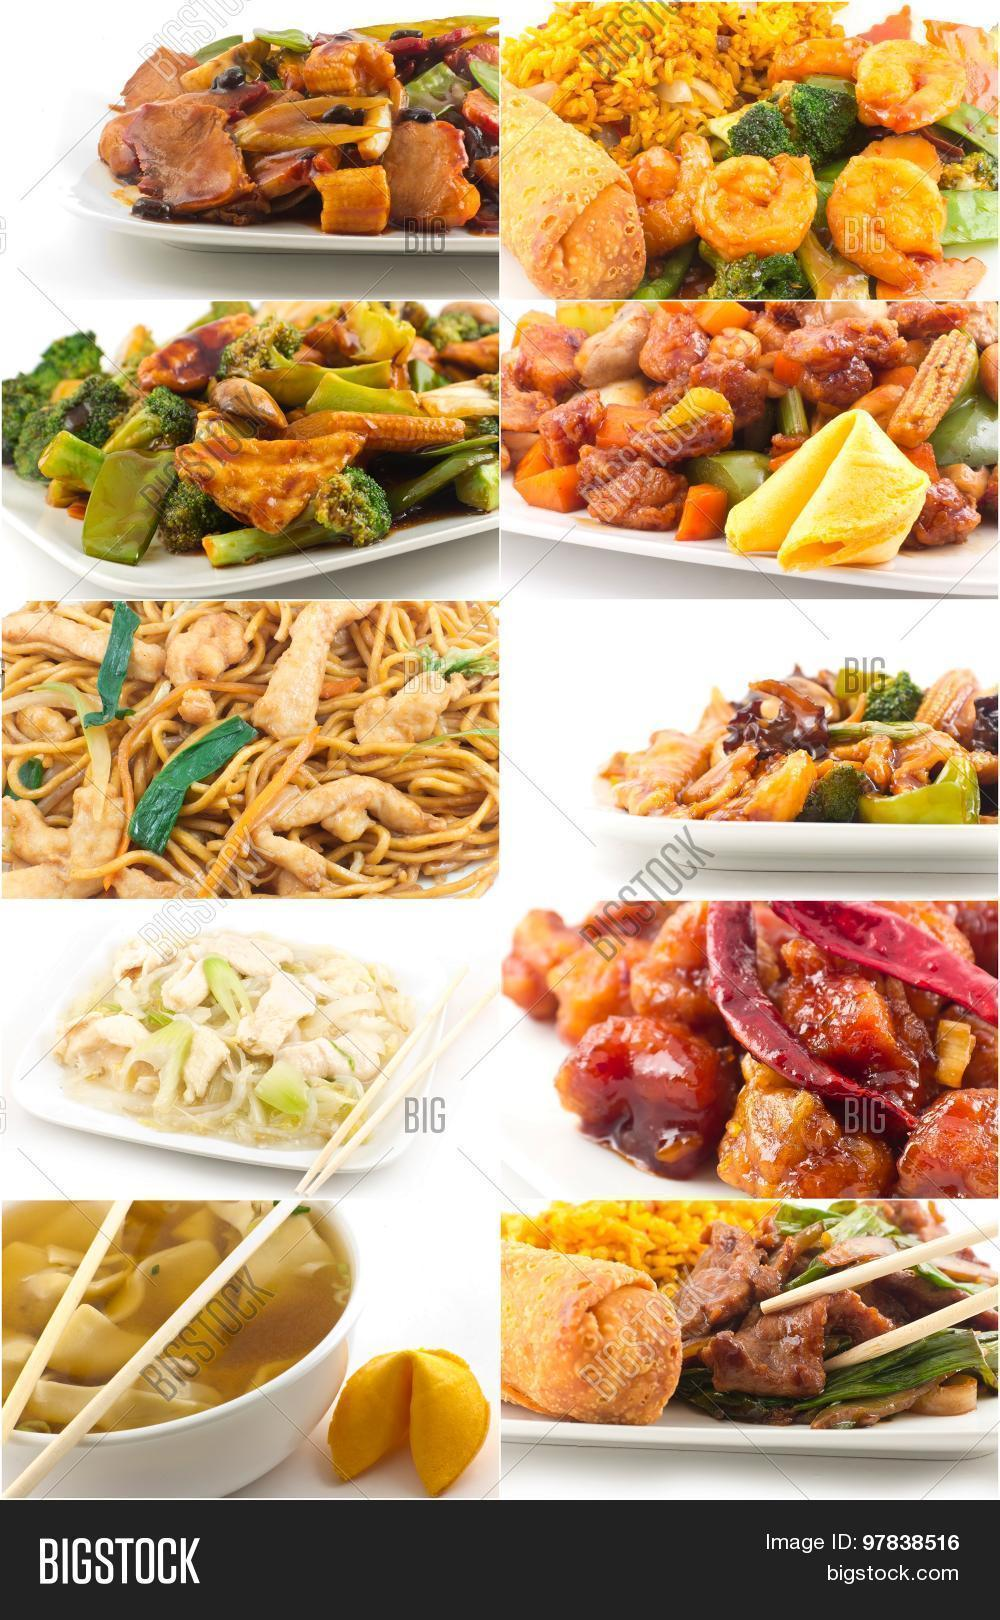 Chinese food collage image photo bigstock for 8 chinese cuisines